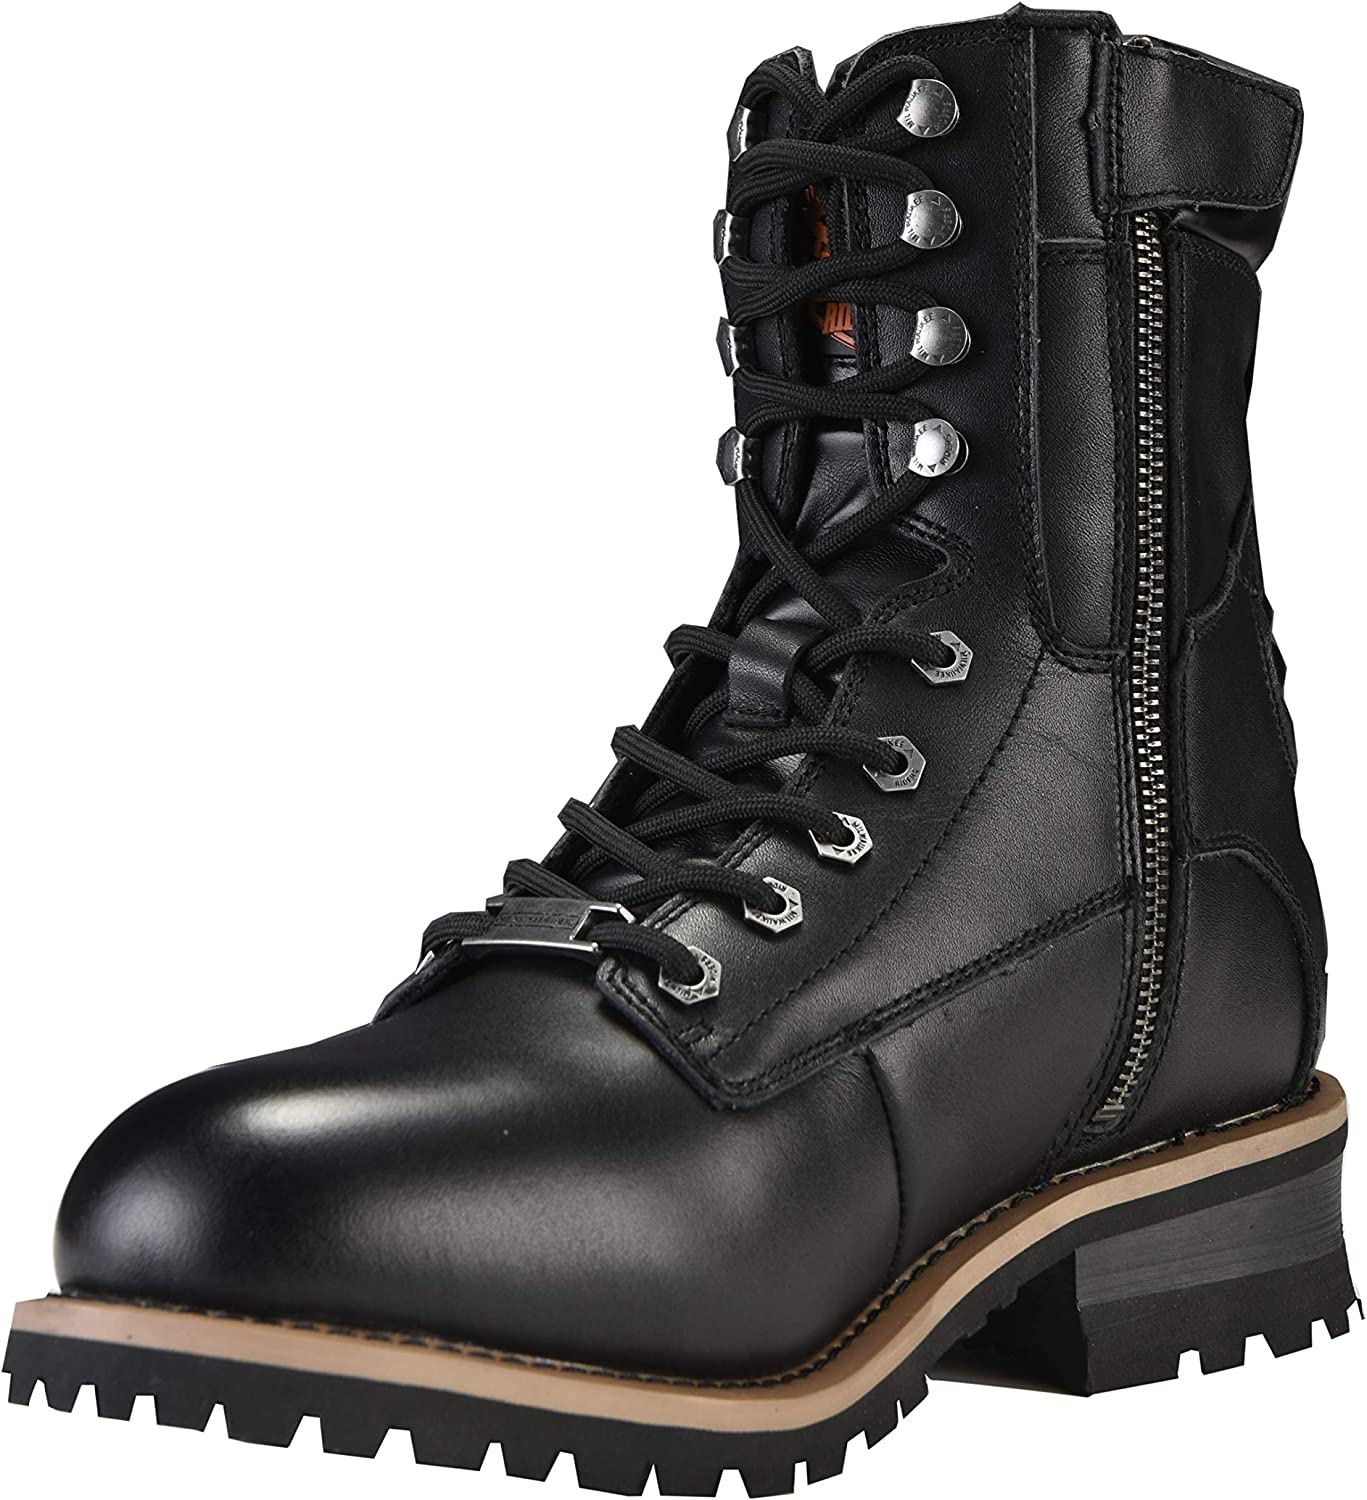 MILWAUKEE RIDERS Motorcycle Army Workwear Wide Cycling Boots Combat Boots